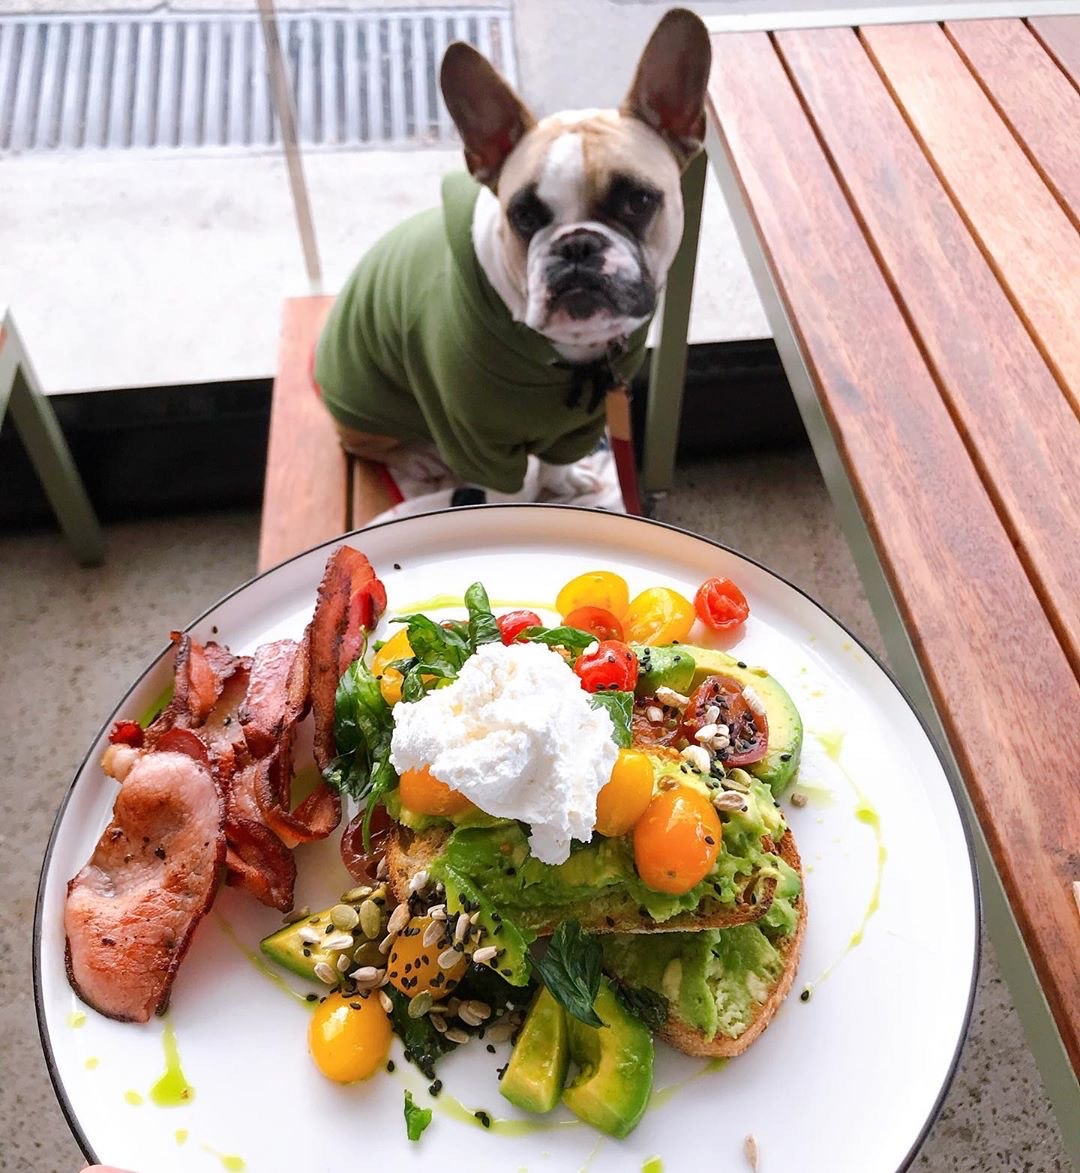 Frenchie best dog-loving restaurants in Washington.